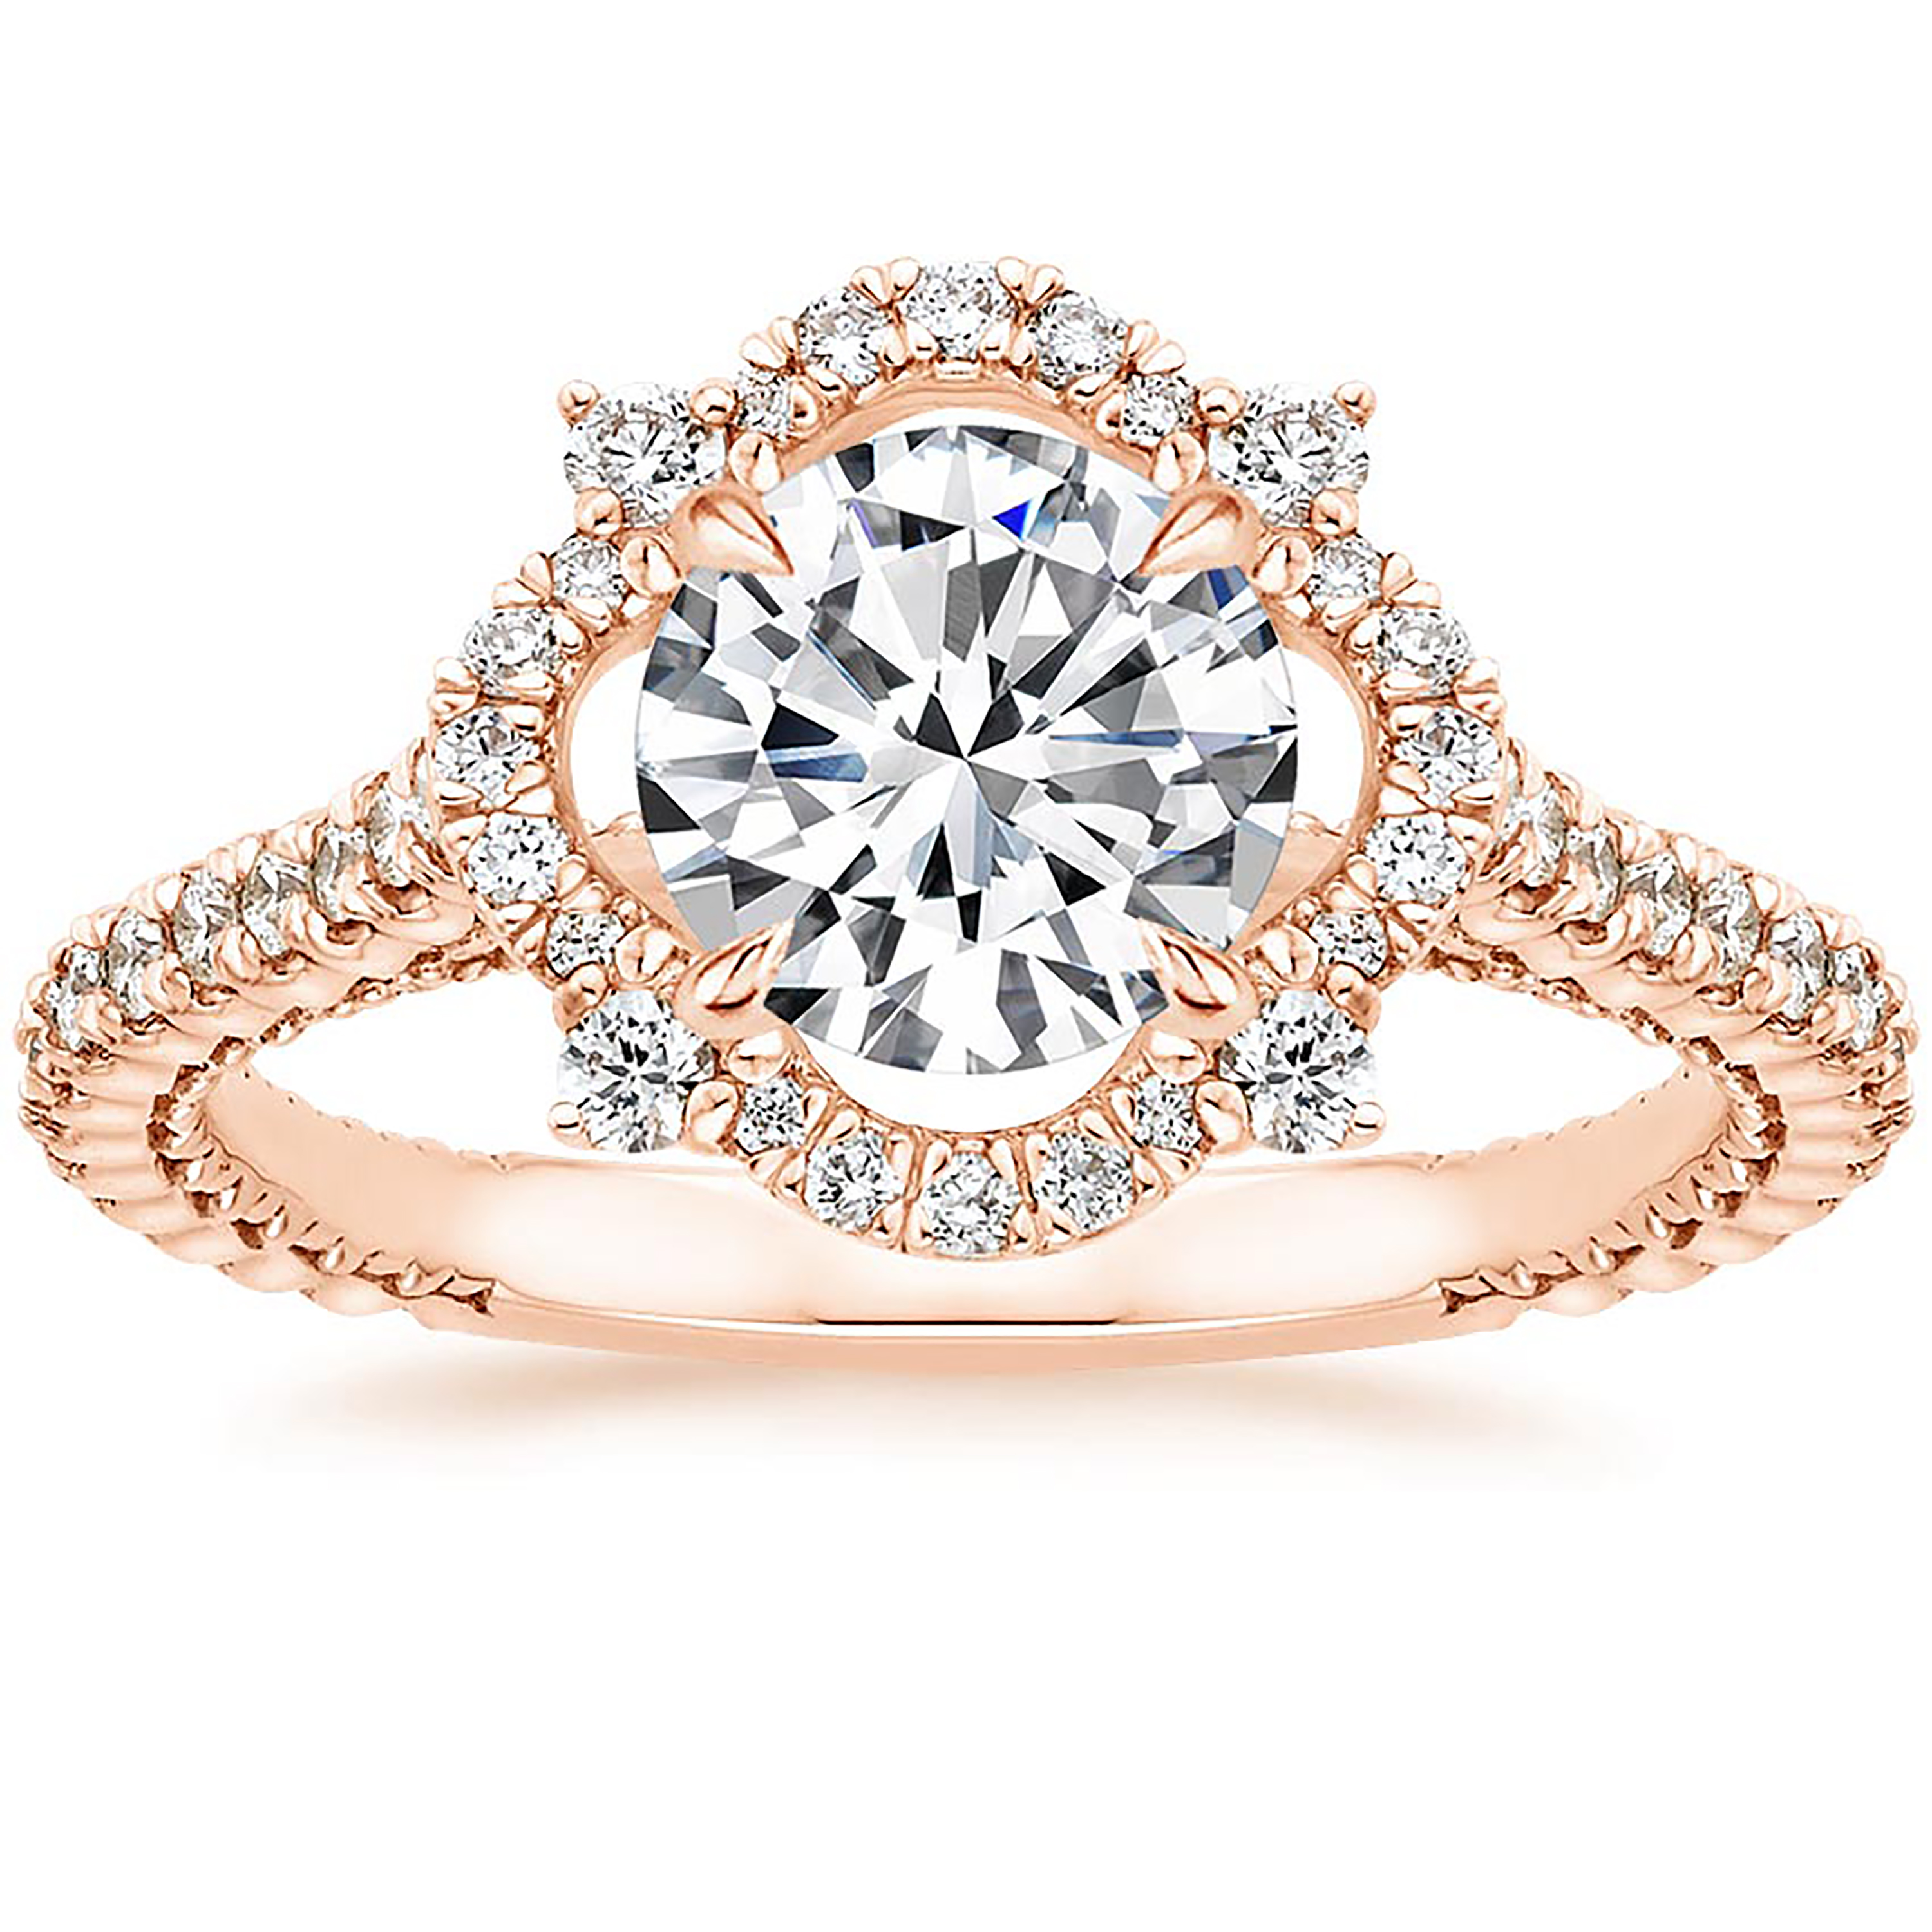 Lela Rose Is Designing Wedding Bands And Engagement Rings With